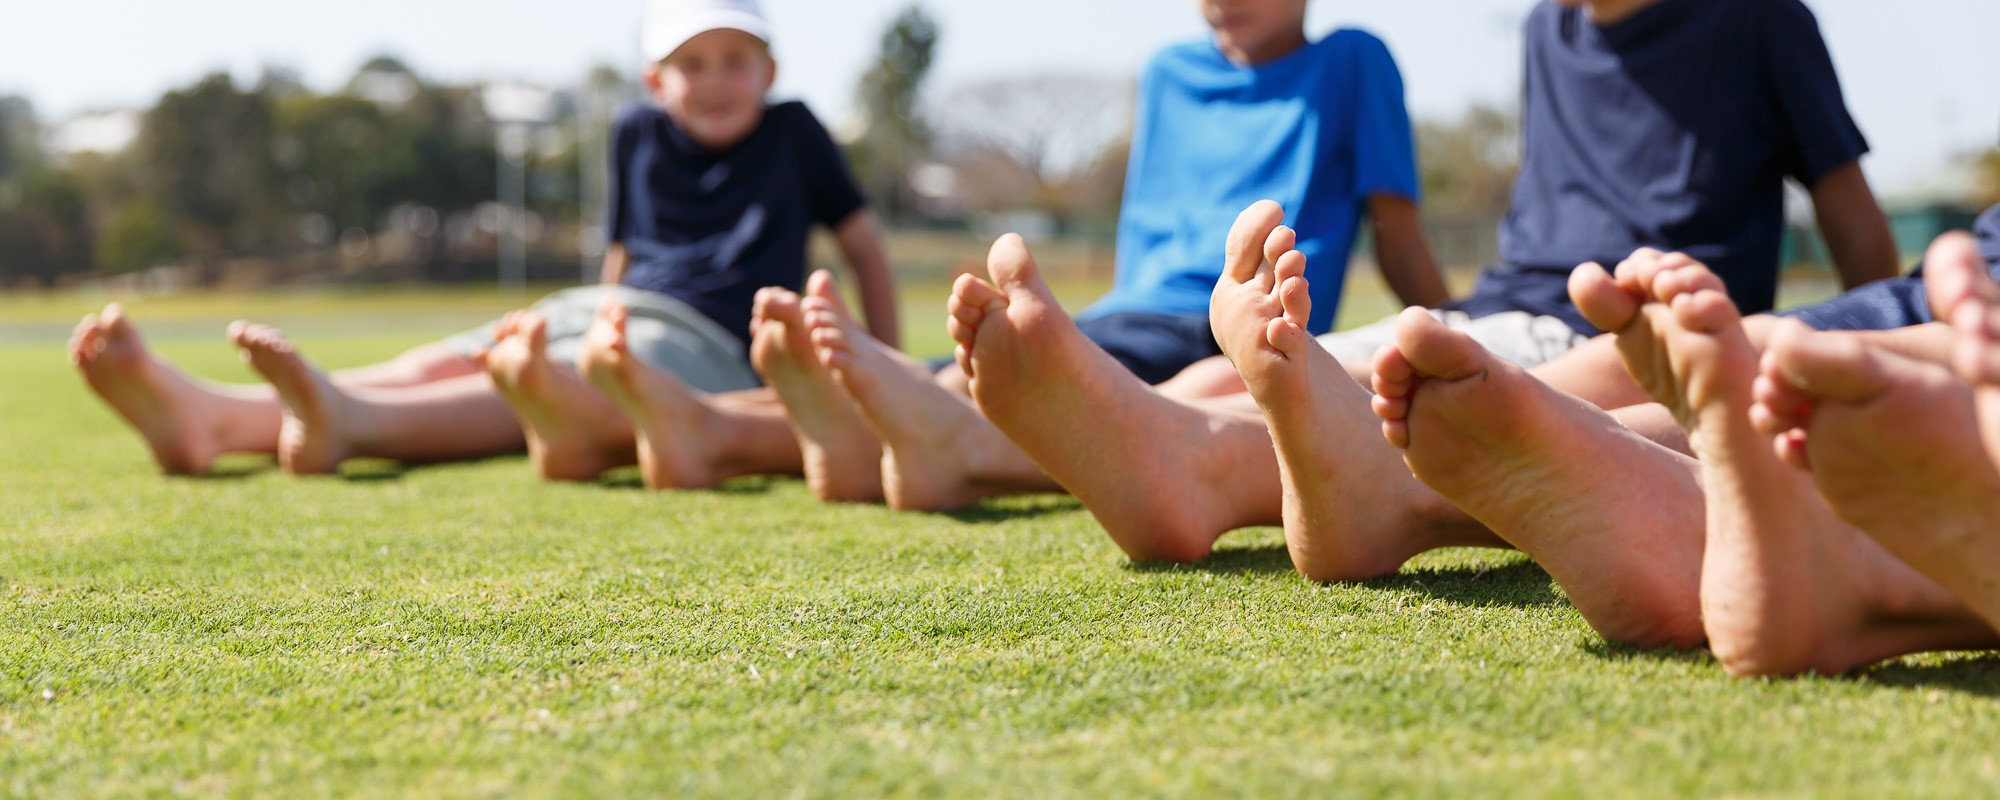 Children's Podiatry Kids Foot Health